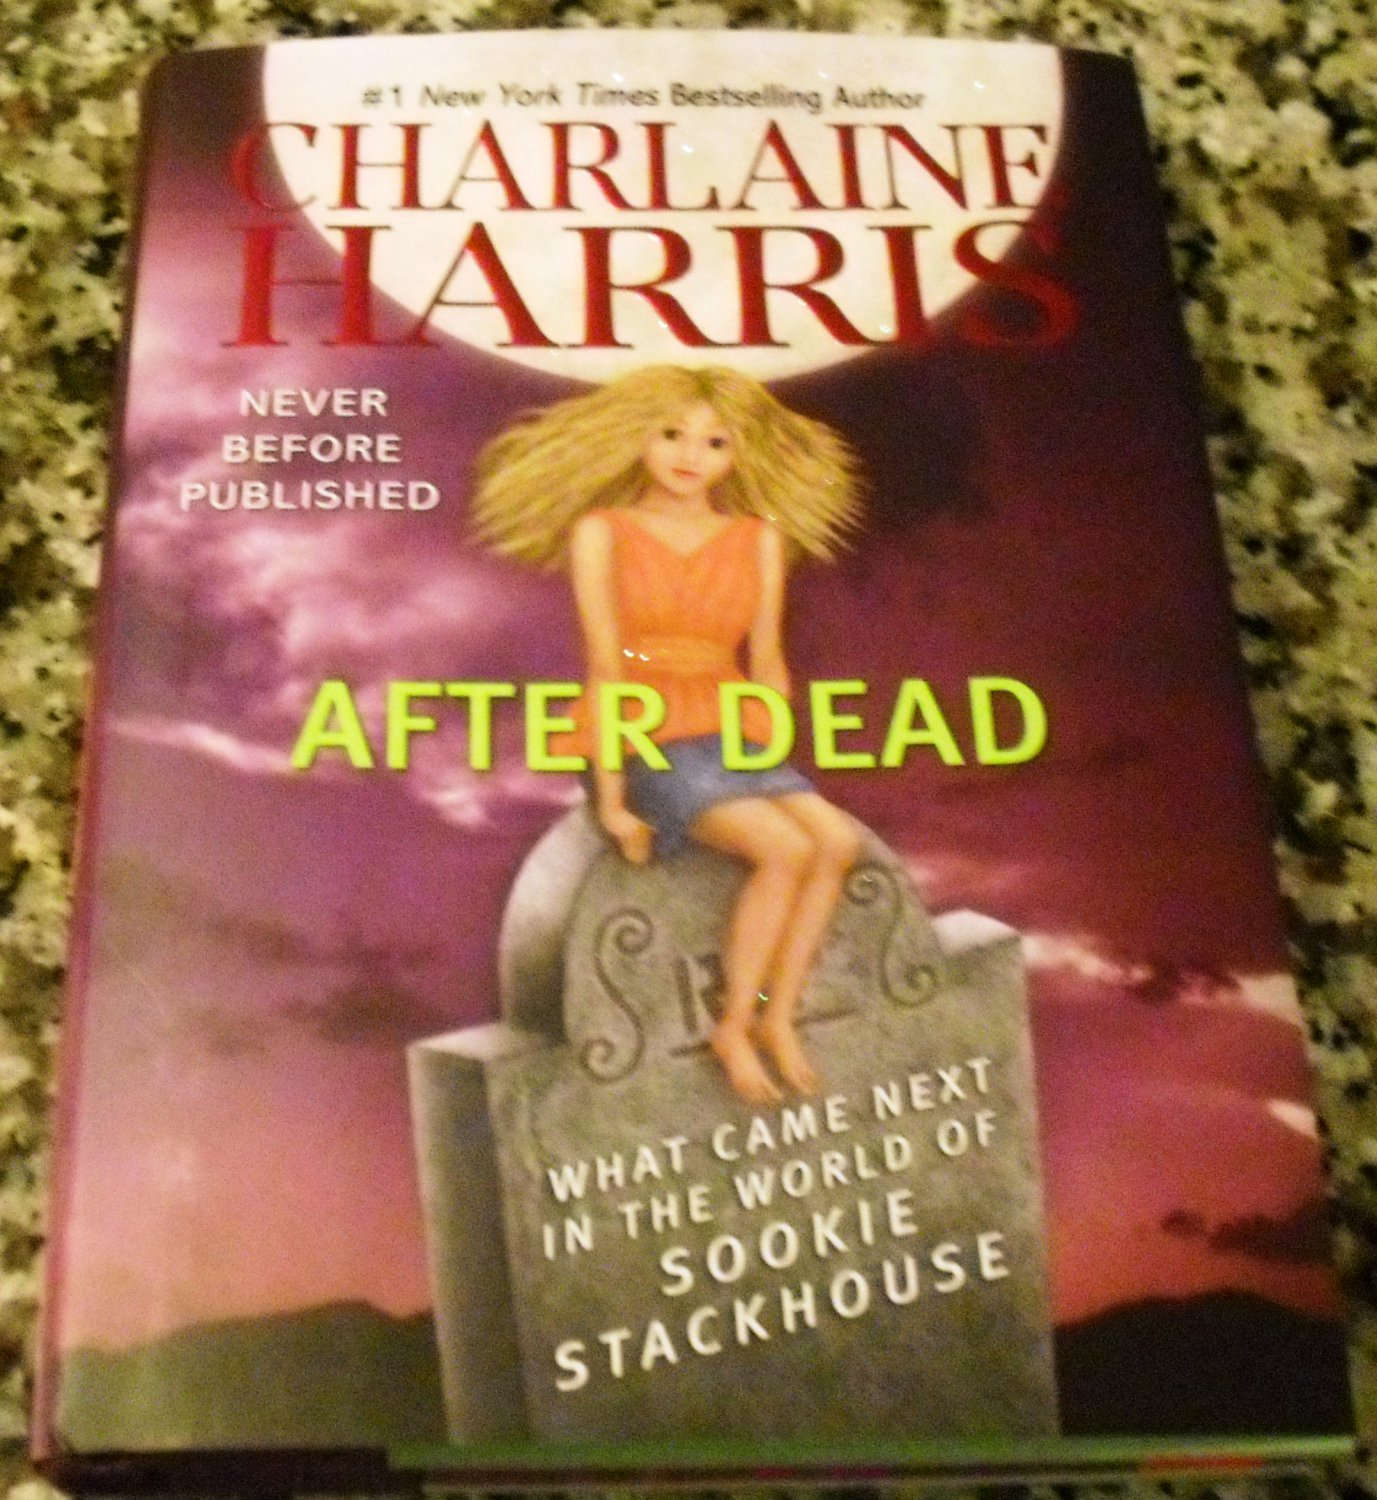 After Dead: What Came Next in the World of Sookie Stackhouse by Charlaine Harris (2013)